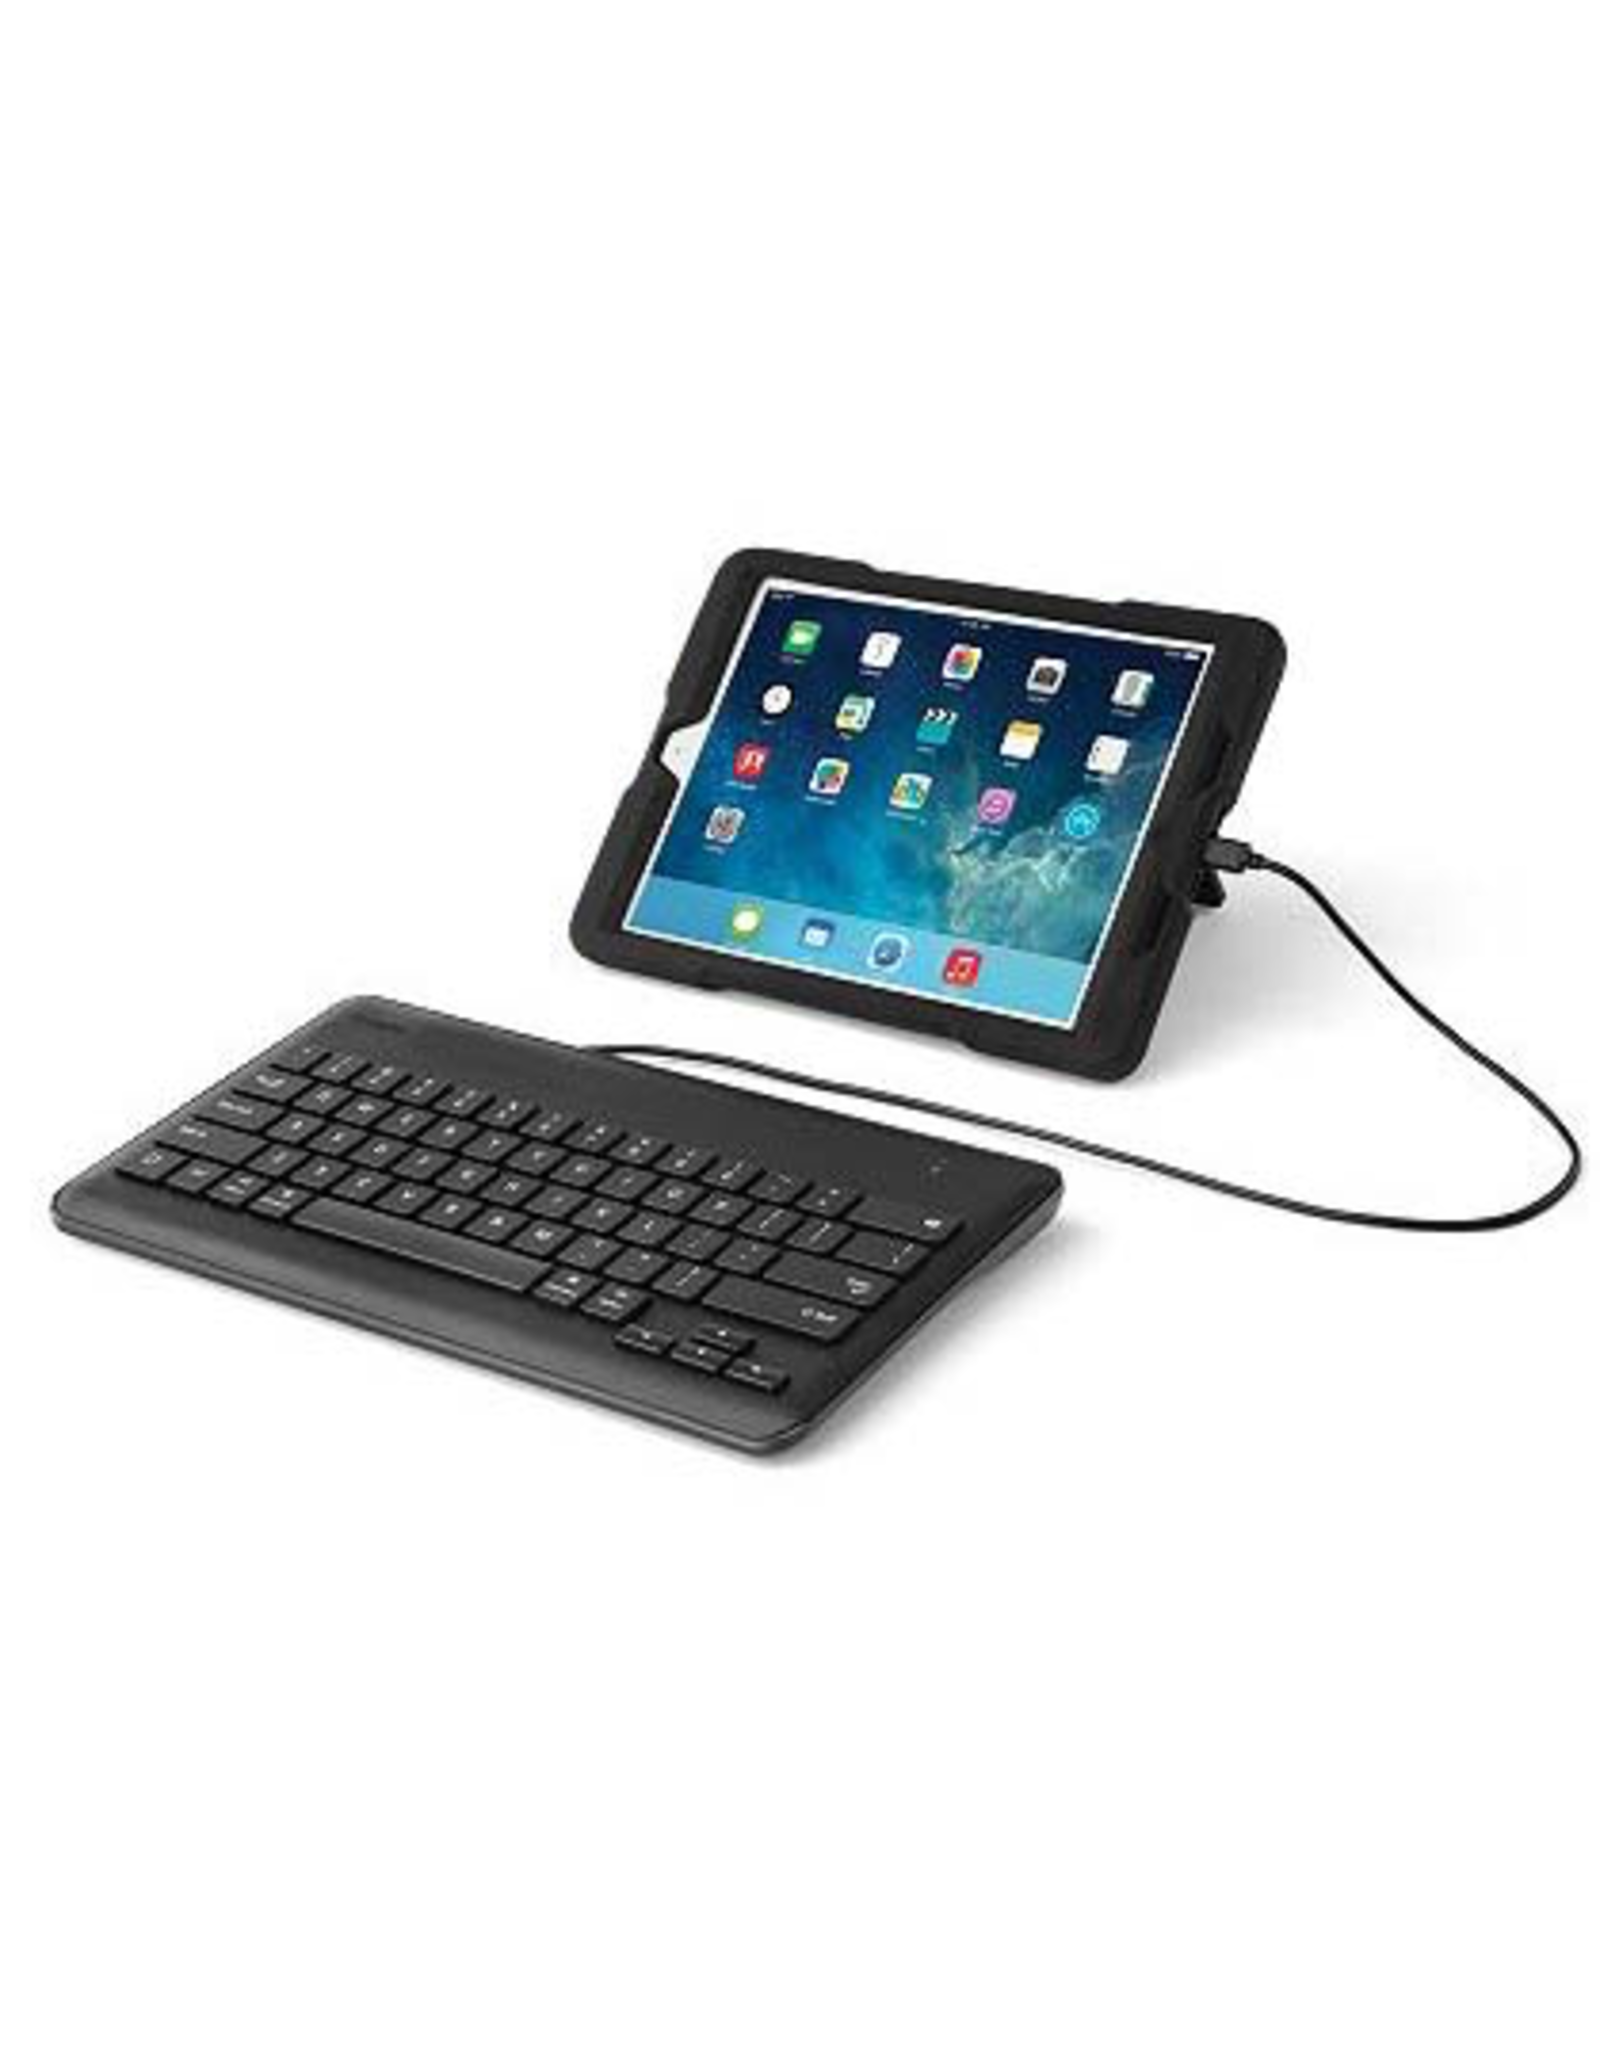 Kensington Kensington Wired Keyboard for iPad with Lightning Connector